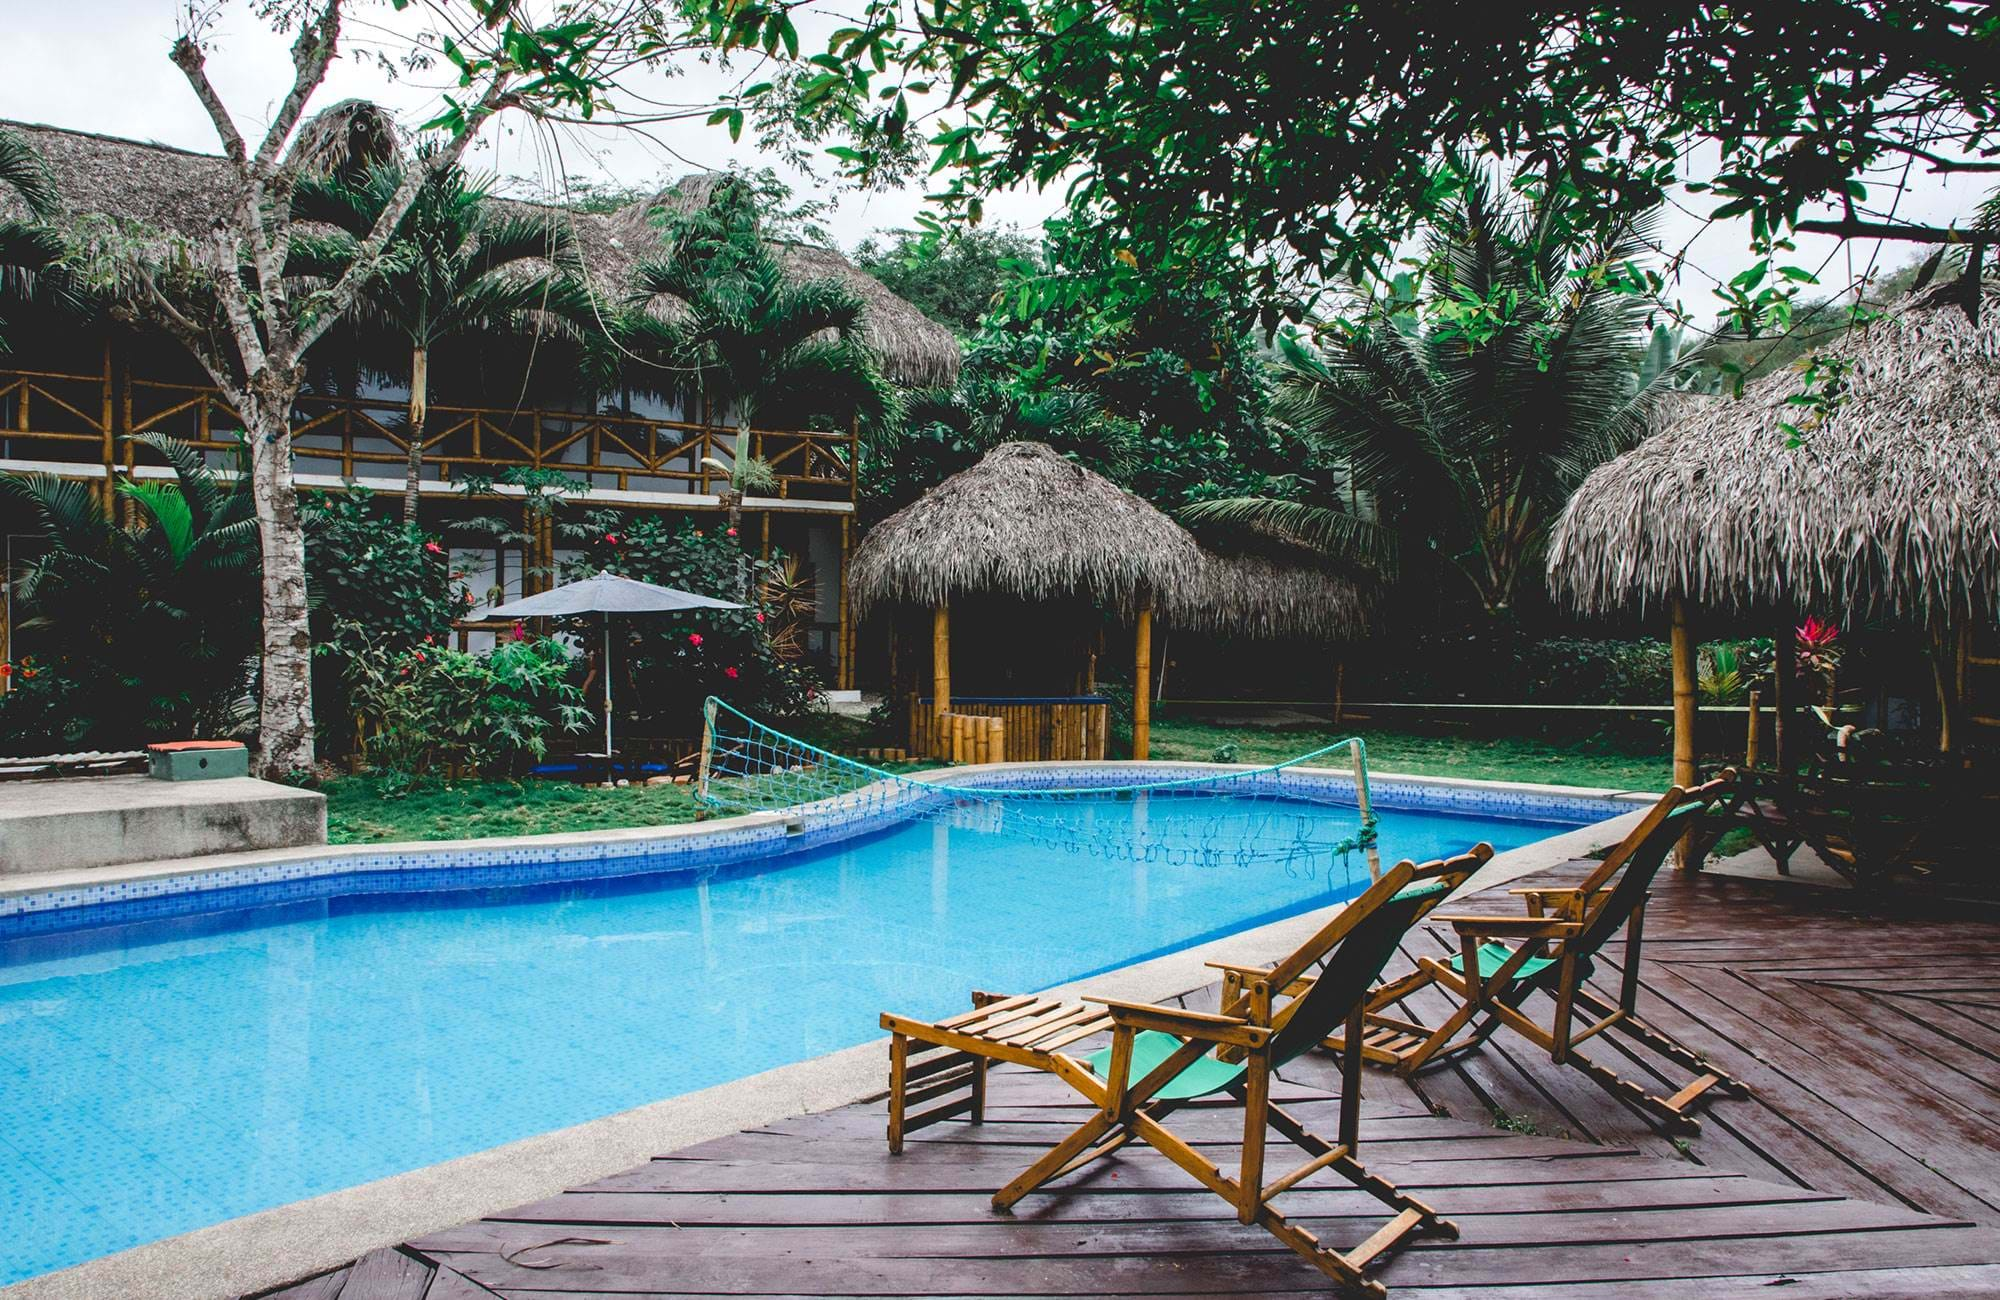 a pool at the dorm in montanita